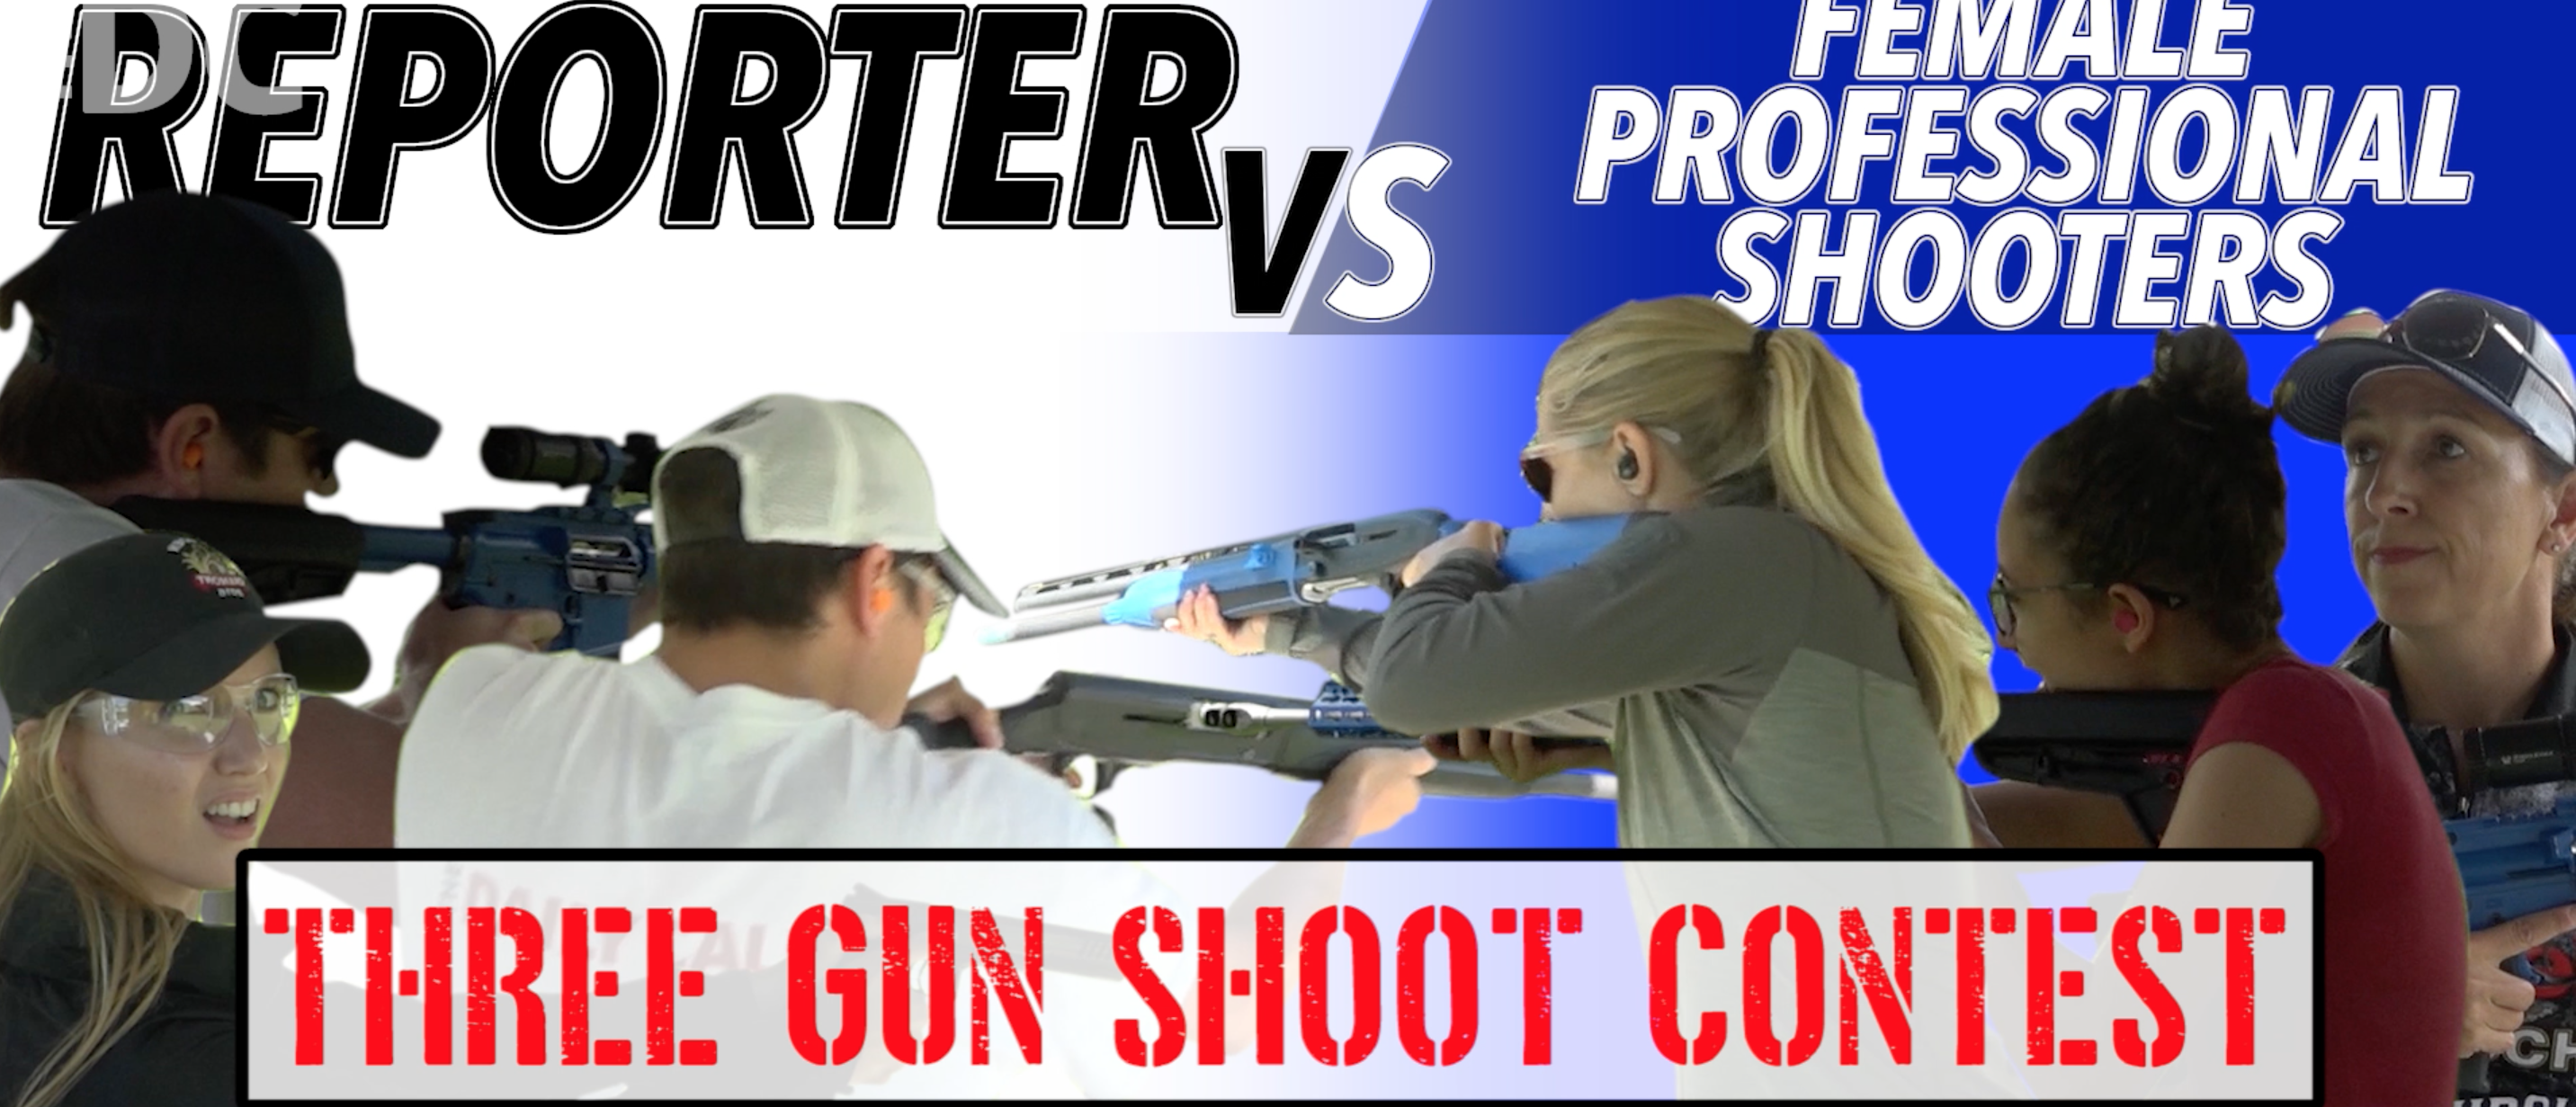 Reporter Vs. Professional Female Shooters Of The DC Project